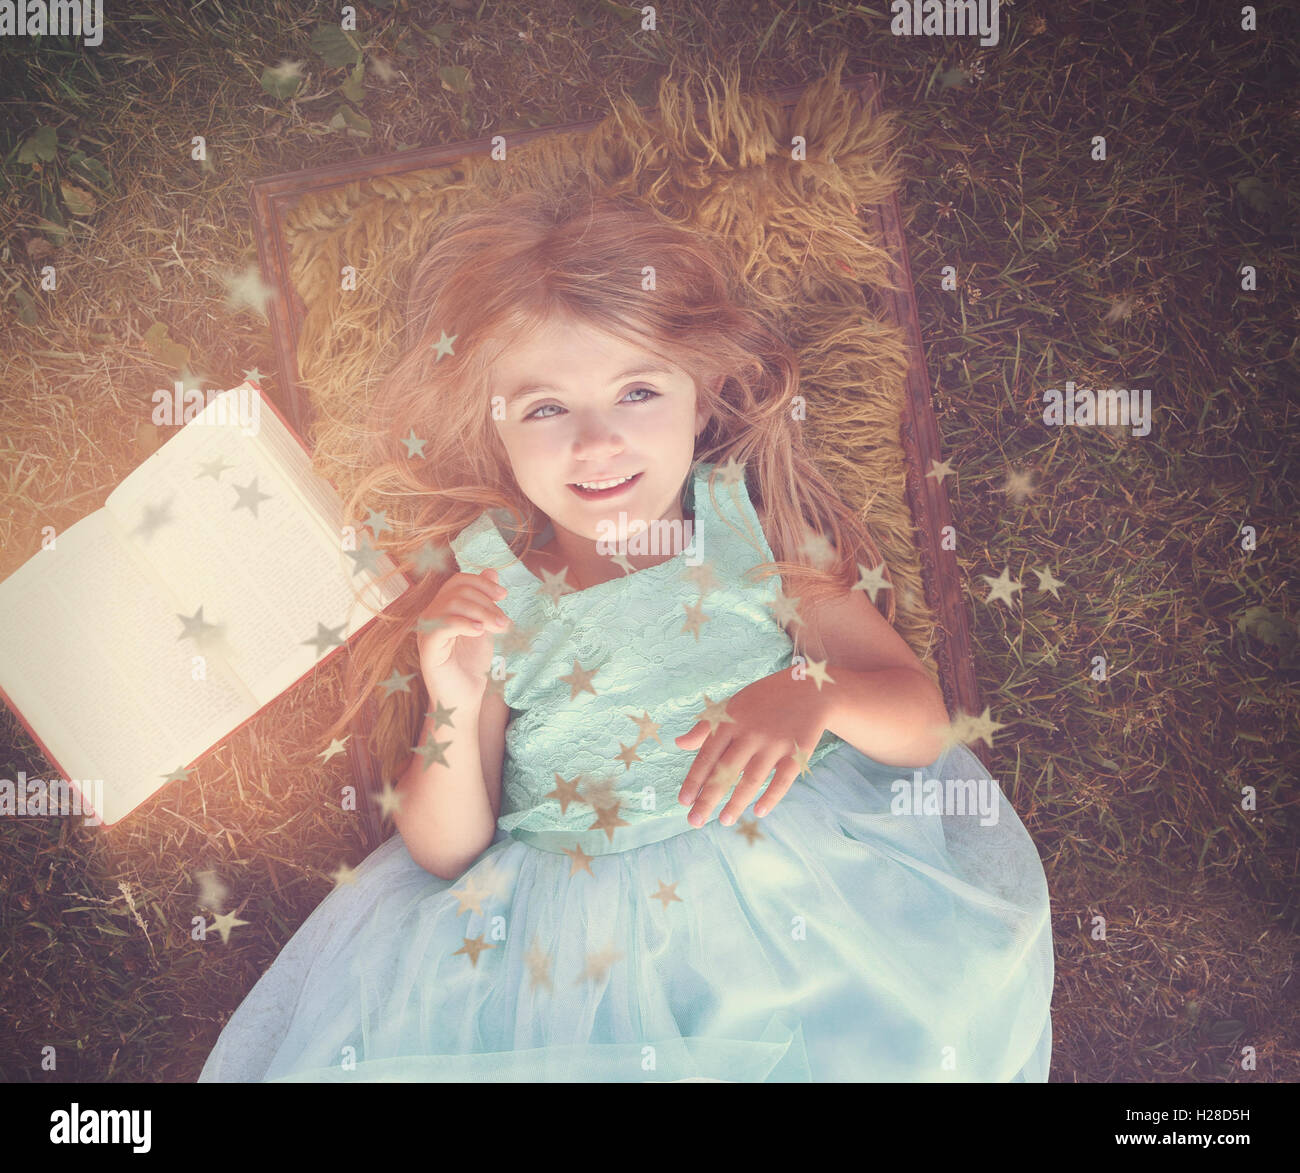 A happy pretty girl is laying on the grass outside with a story book for a mystery, imagination or fairy tale concept. - Stock Image